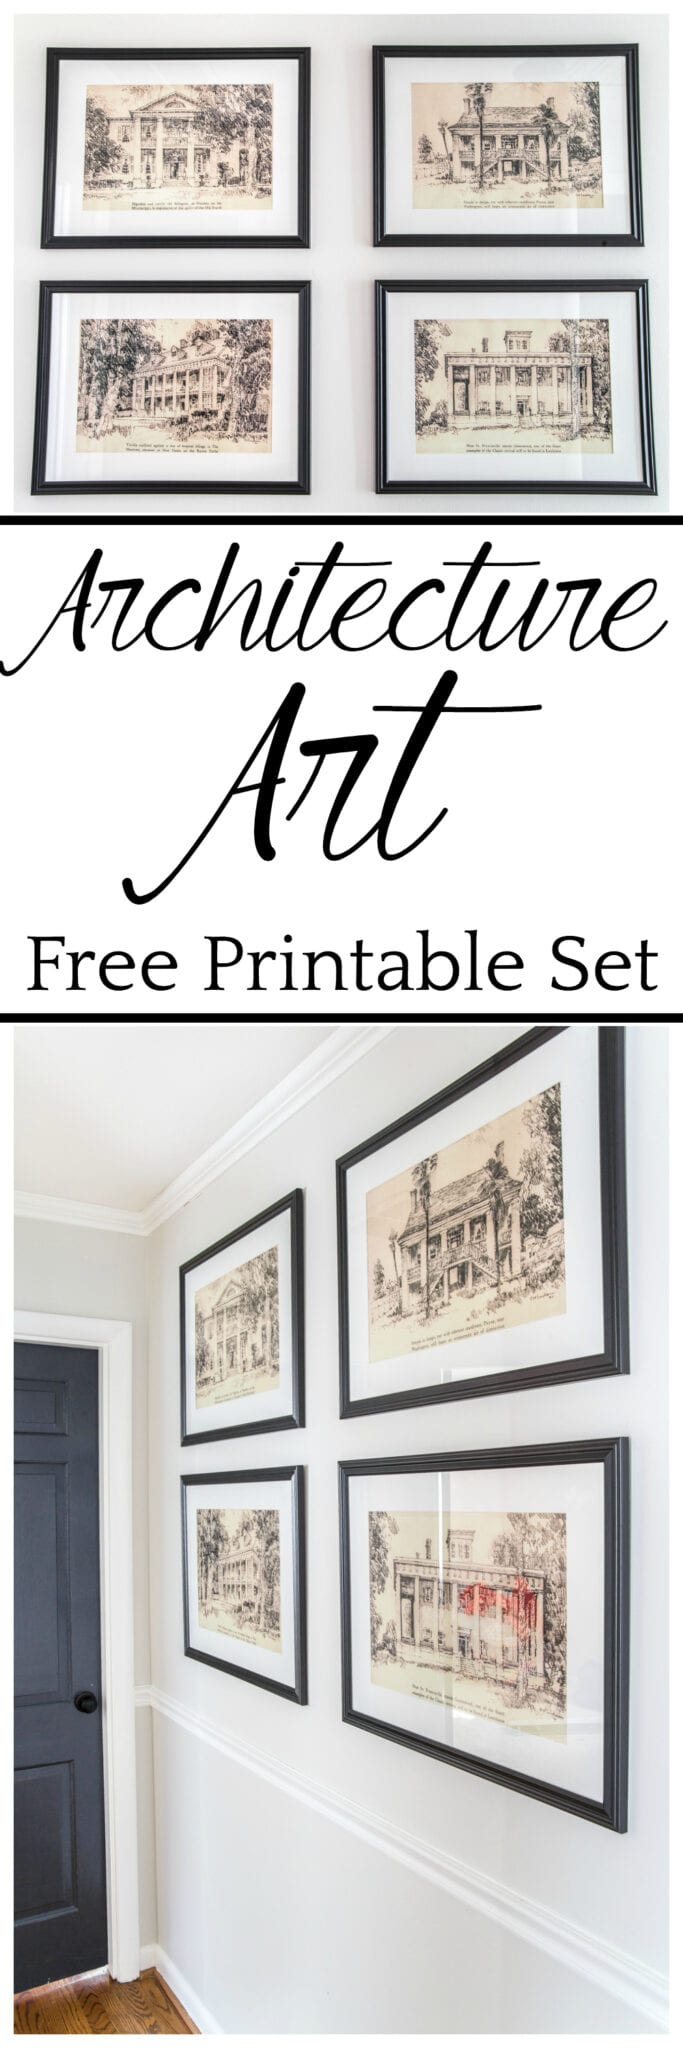 photograph about Free Printable Artwork to Frame named Architectural Printable Artwork - Blesser Property